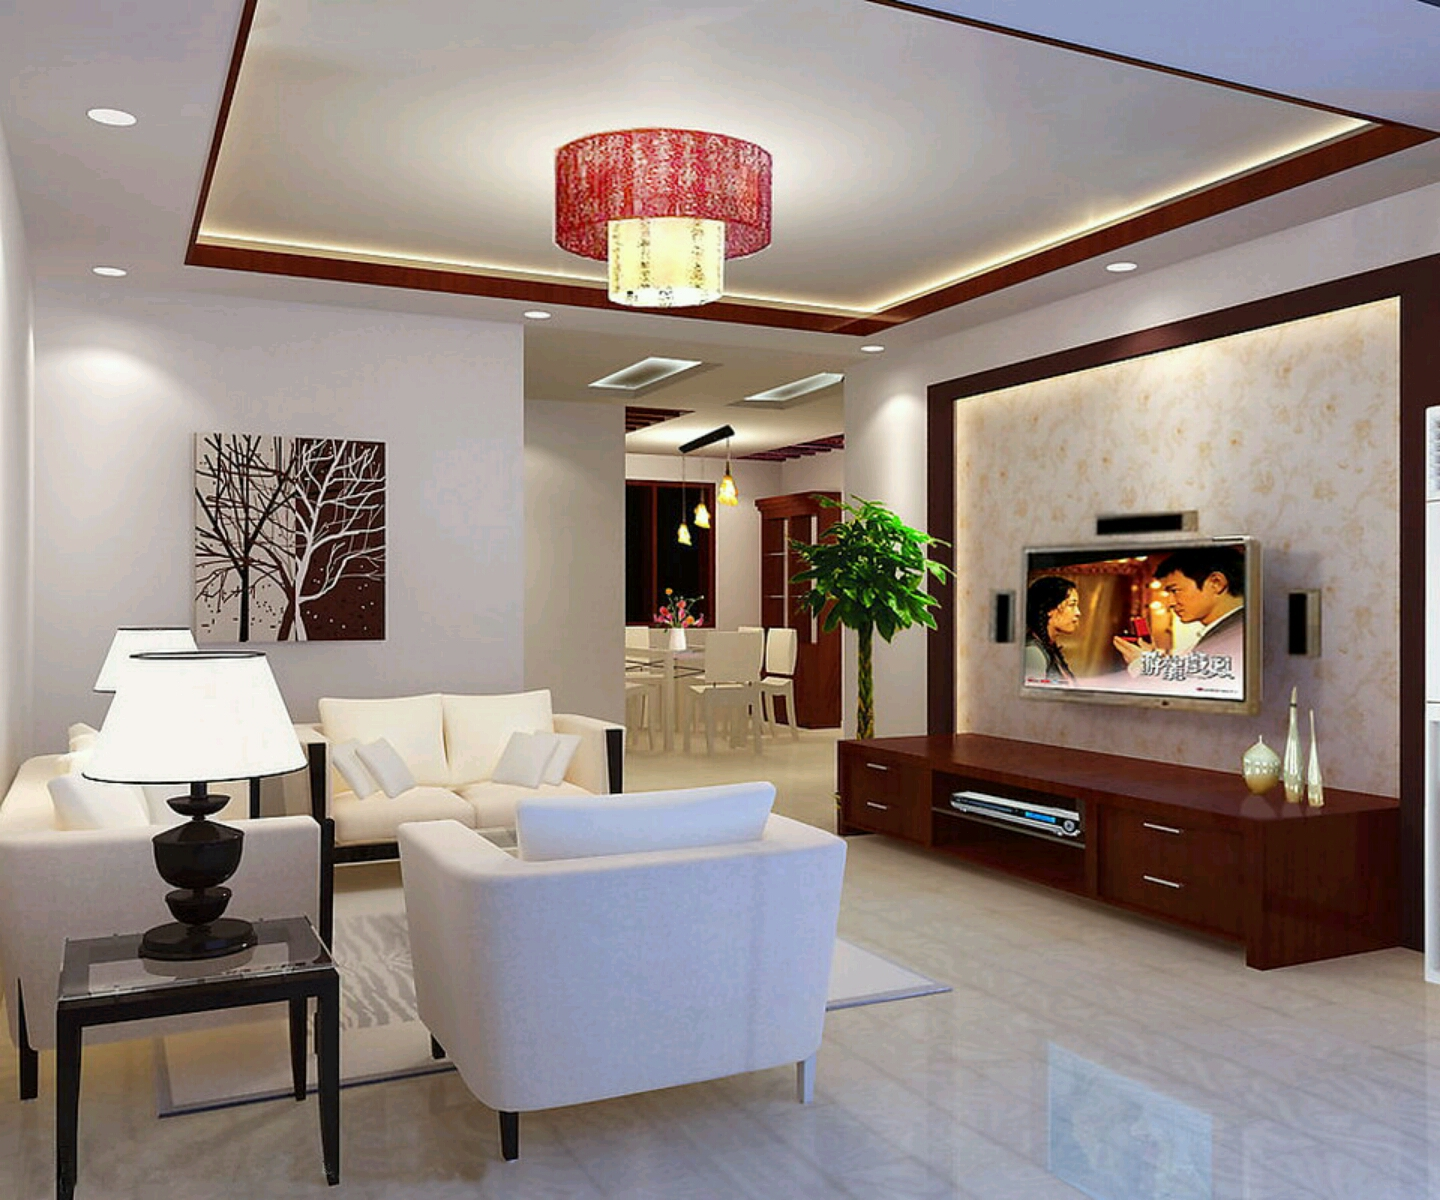 Ceiling Decoration Ideas Entrancing Of Living Room Ceiling Design Ideas Pictures